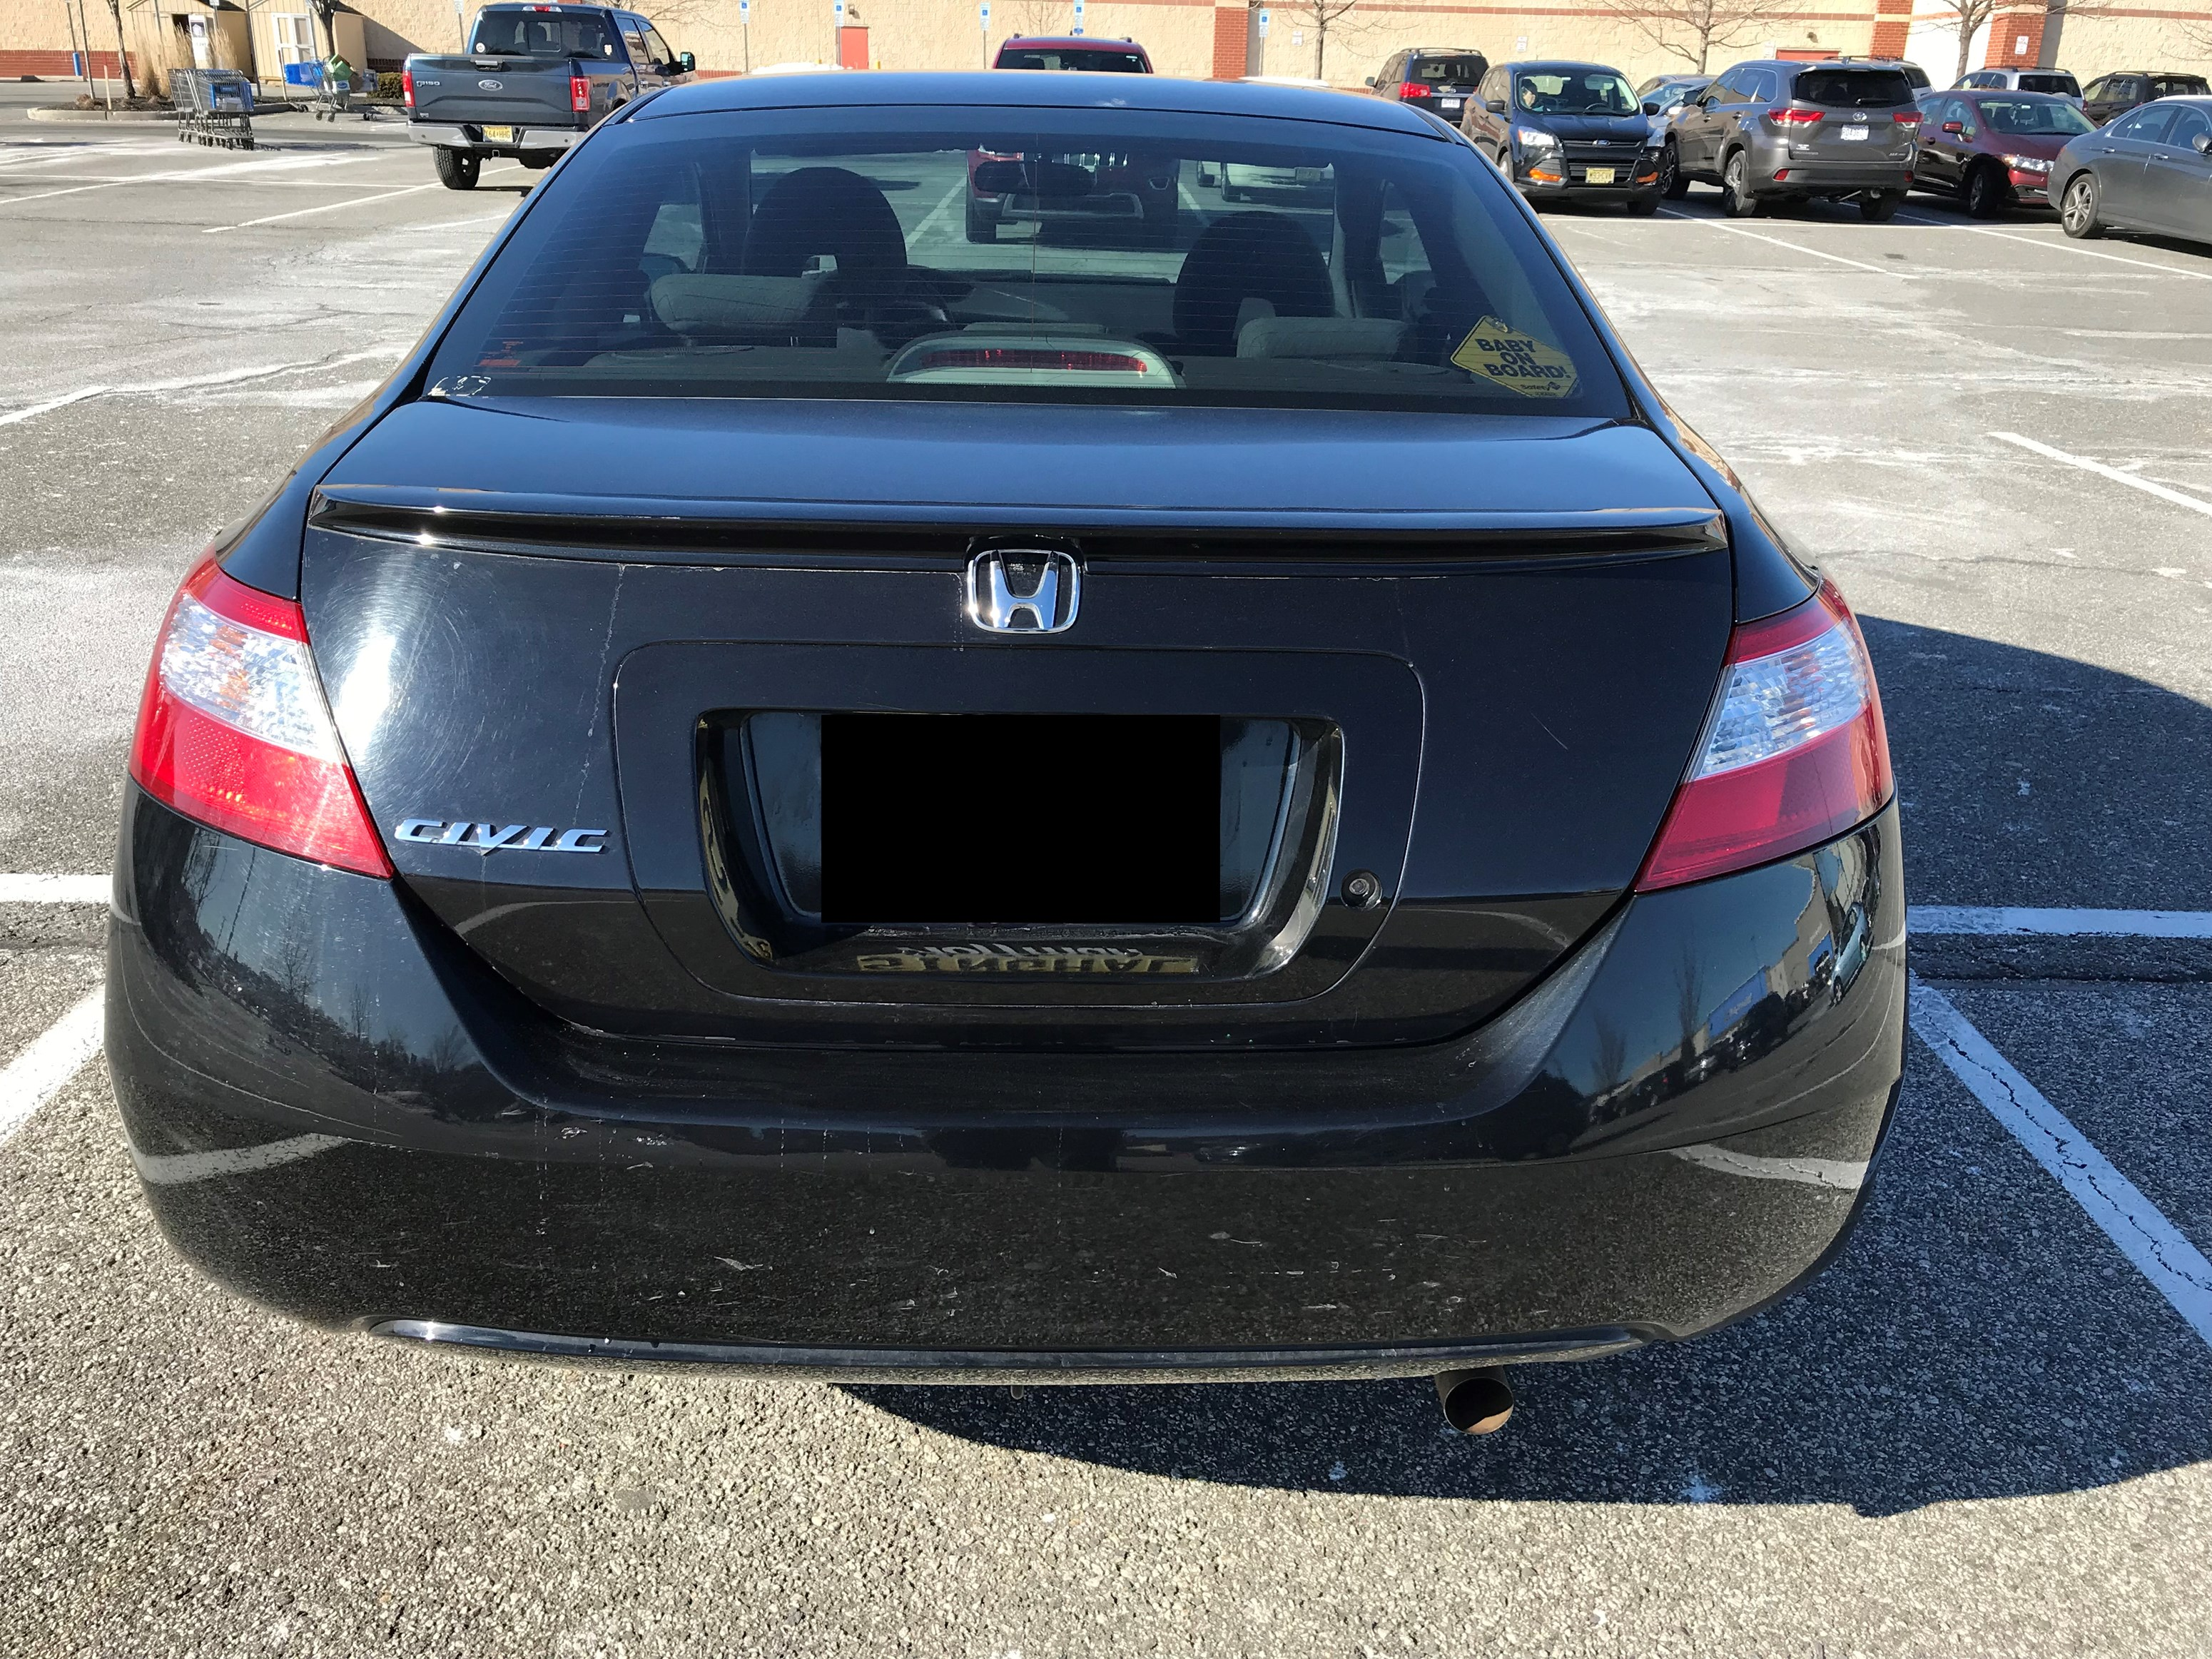 2007 honda civic lx manual coupe